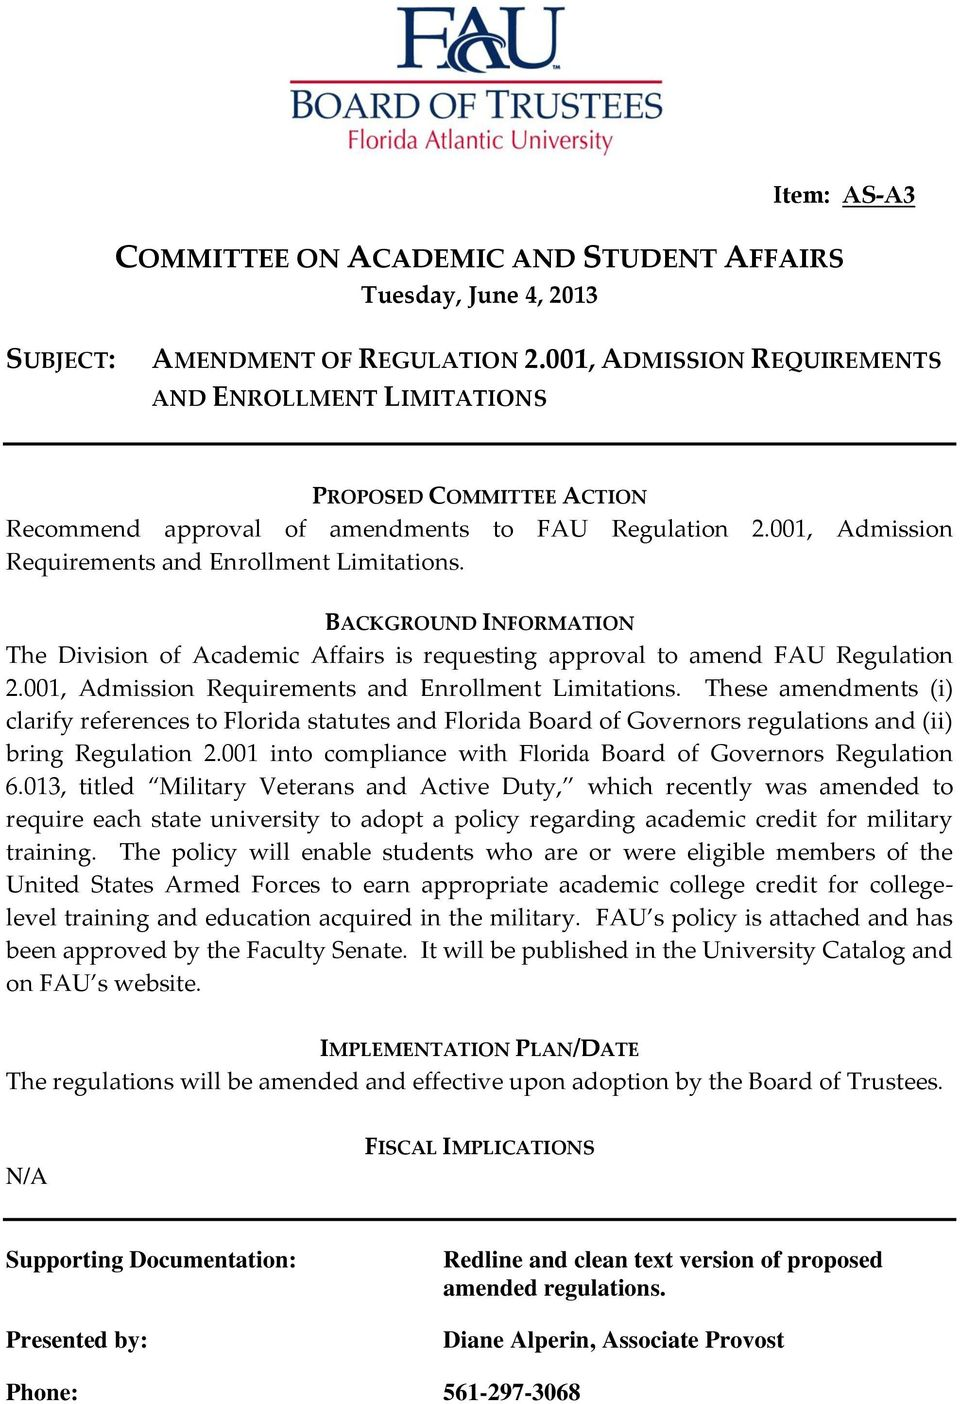 BACKGROUND INFORMATION The Division of Academic Affairs is requesting approval to amend FAU Regulation 2.001, Admission Requirements and Enrollment Limitations.